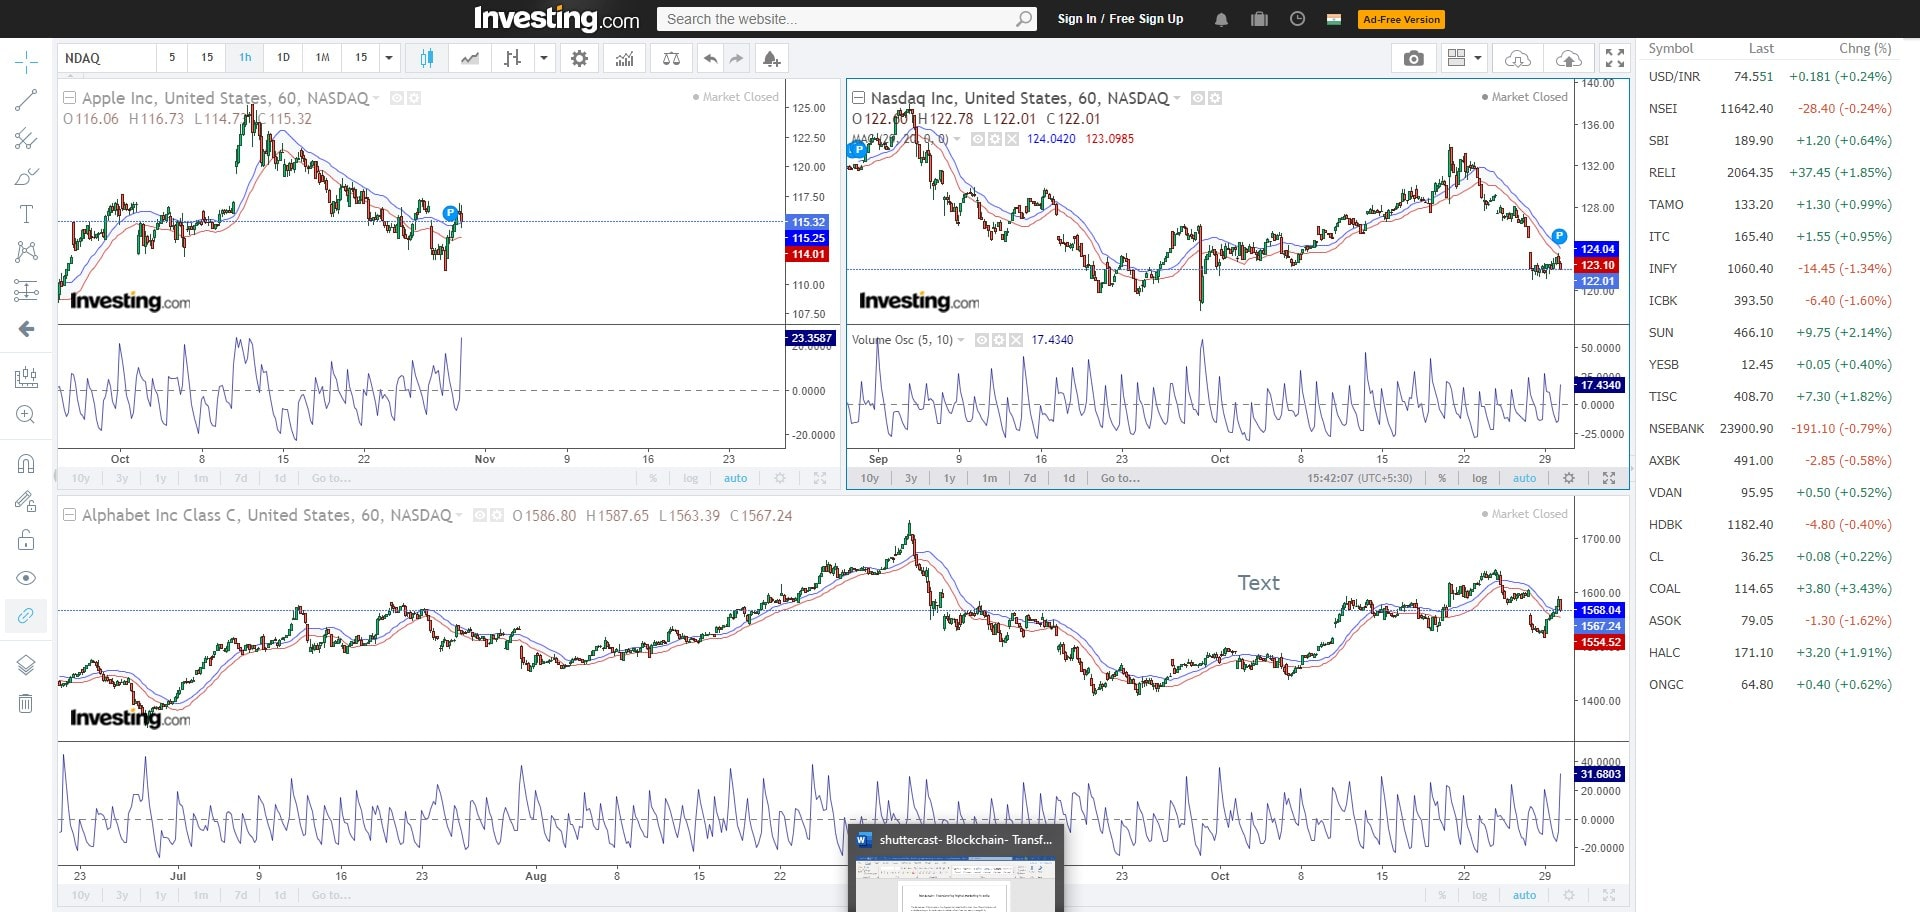 Investing Charting Tool free